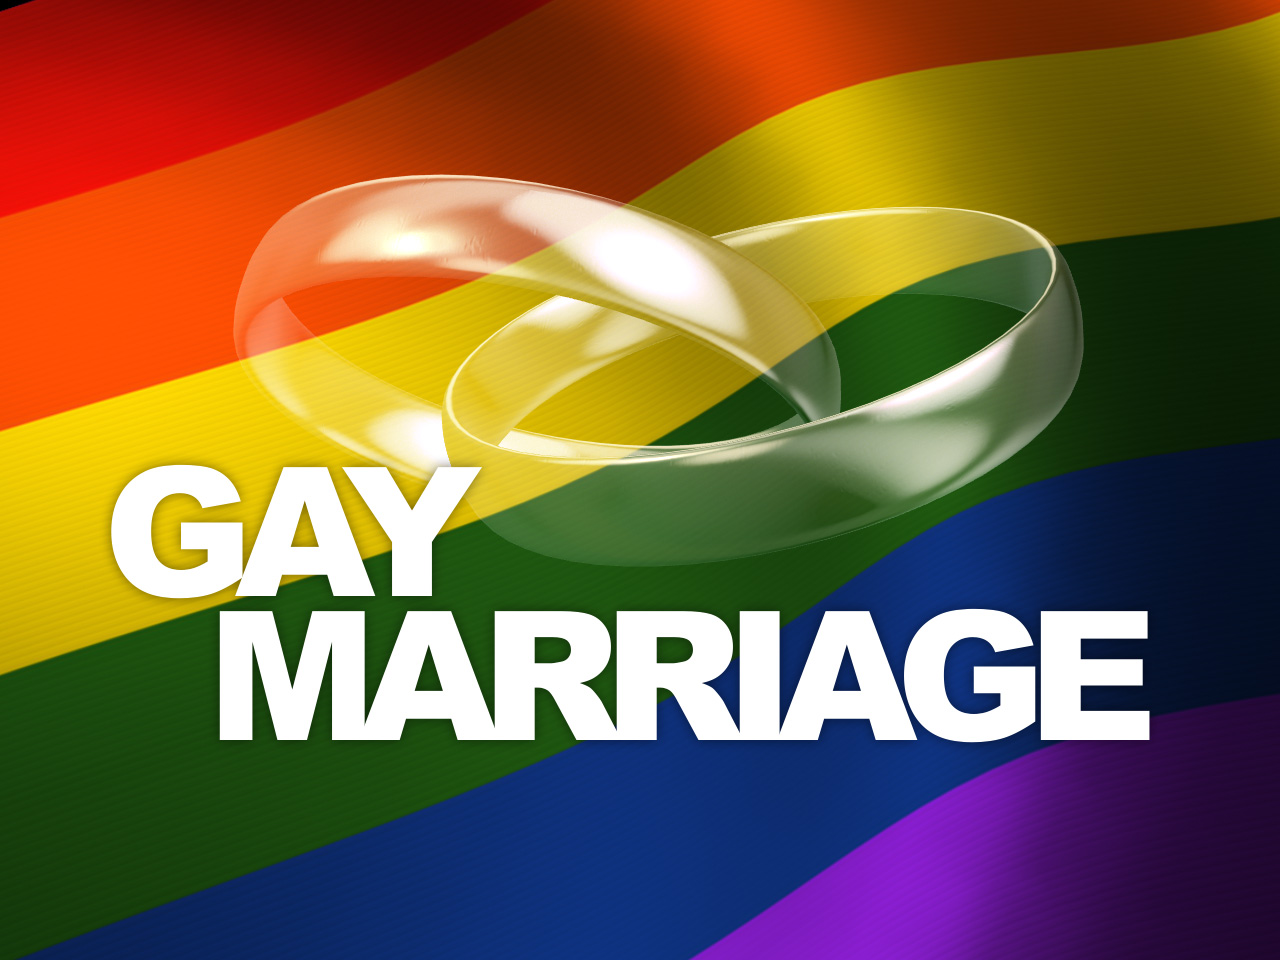 why should we legalize gay marriage essay